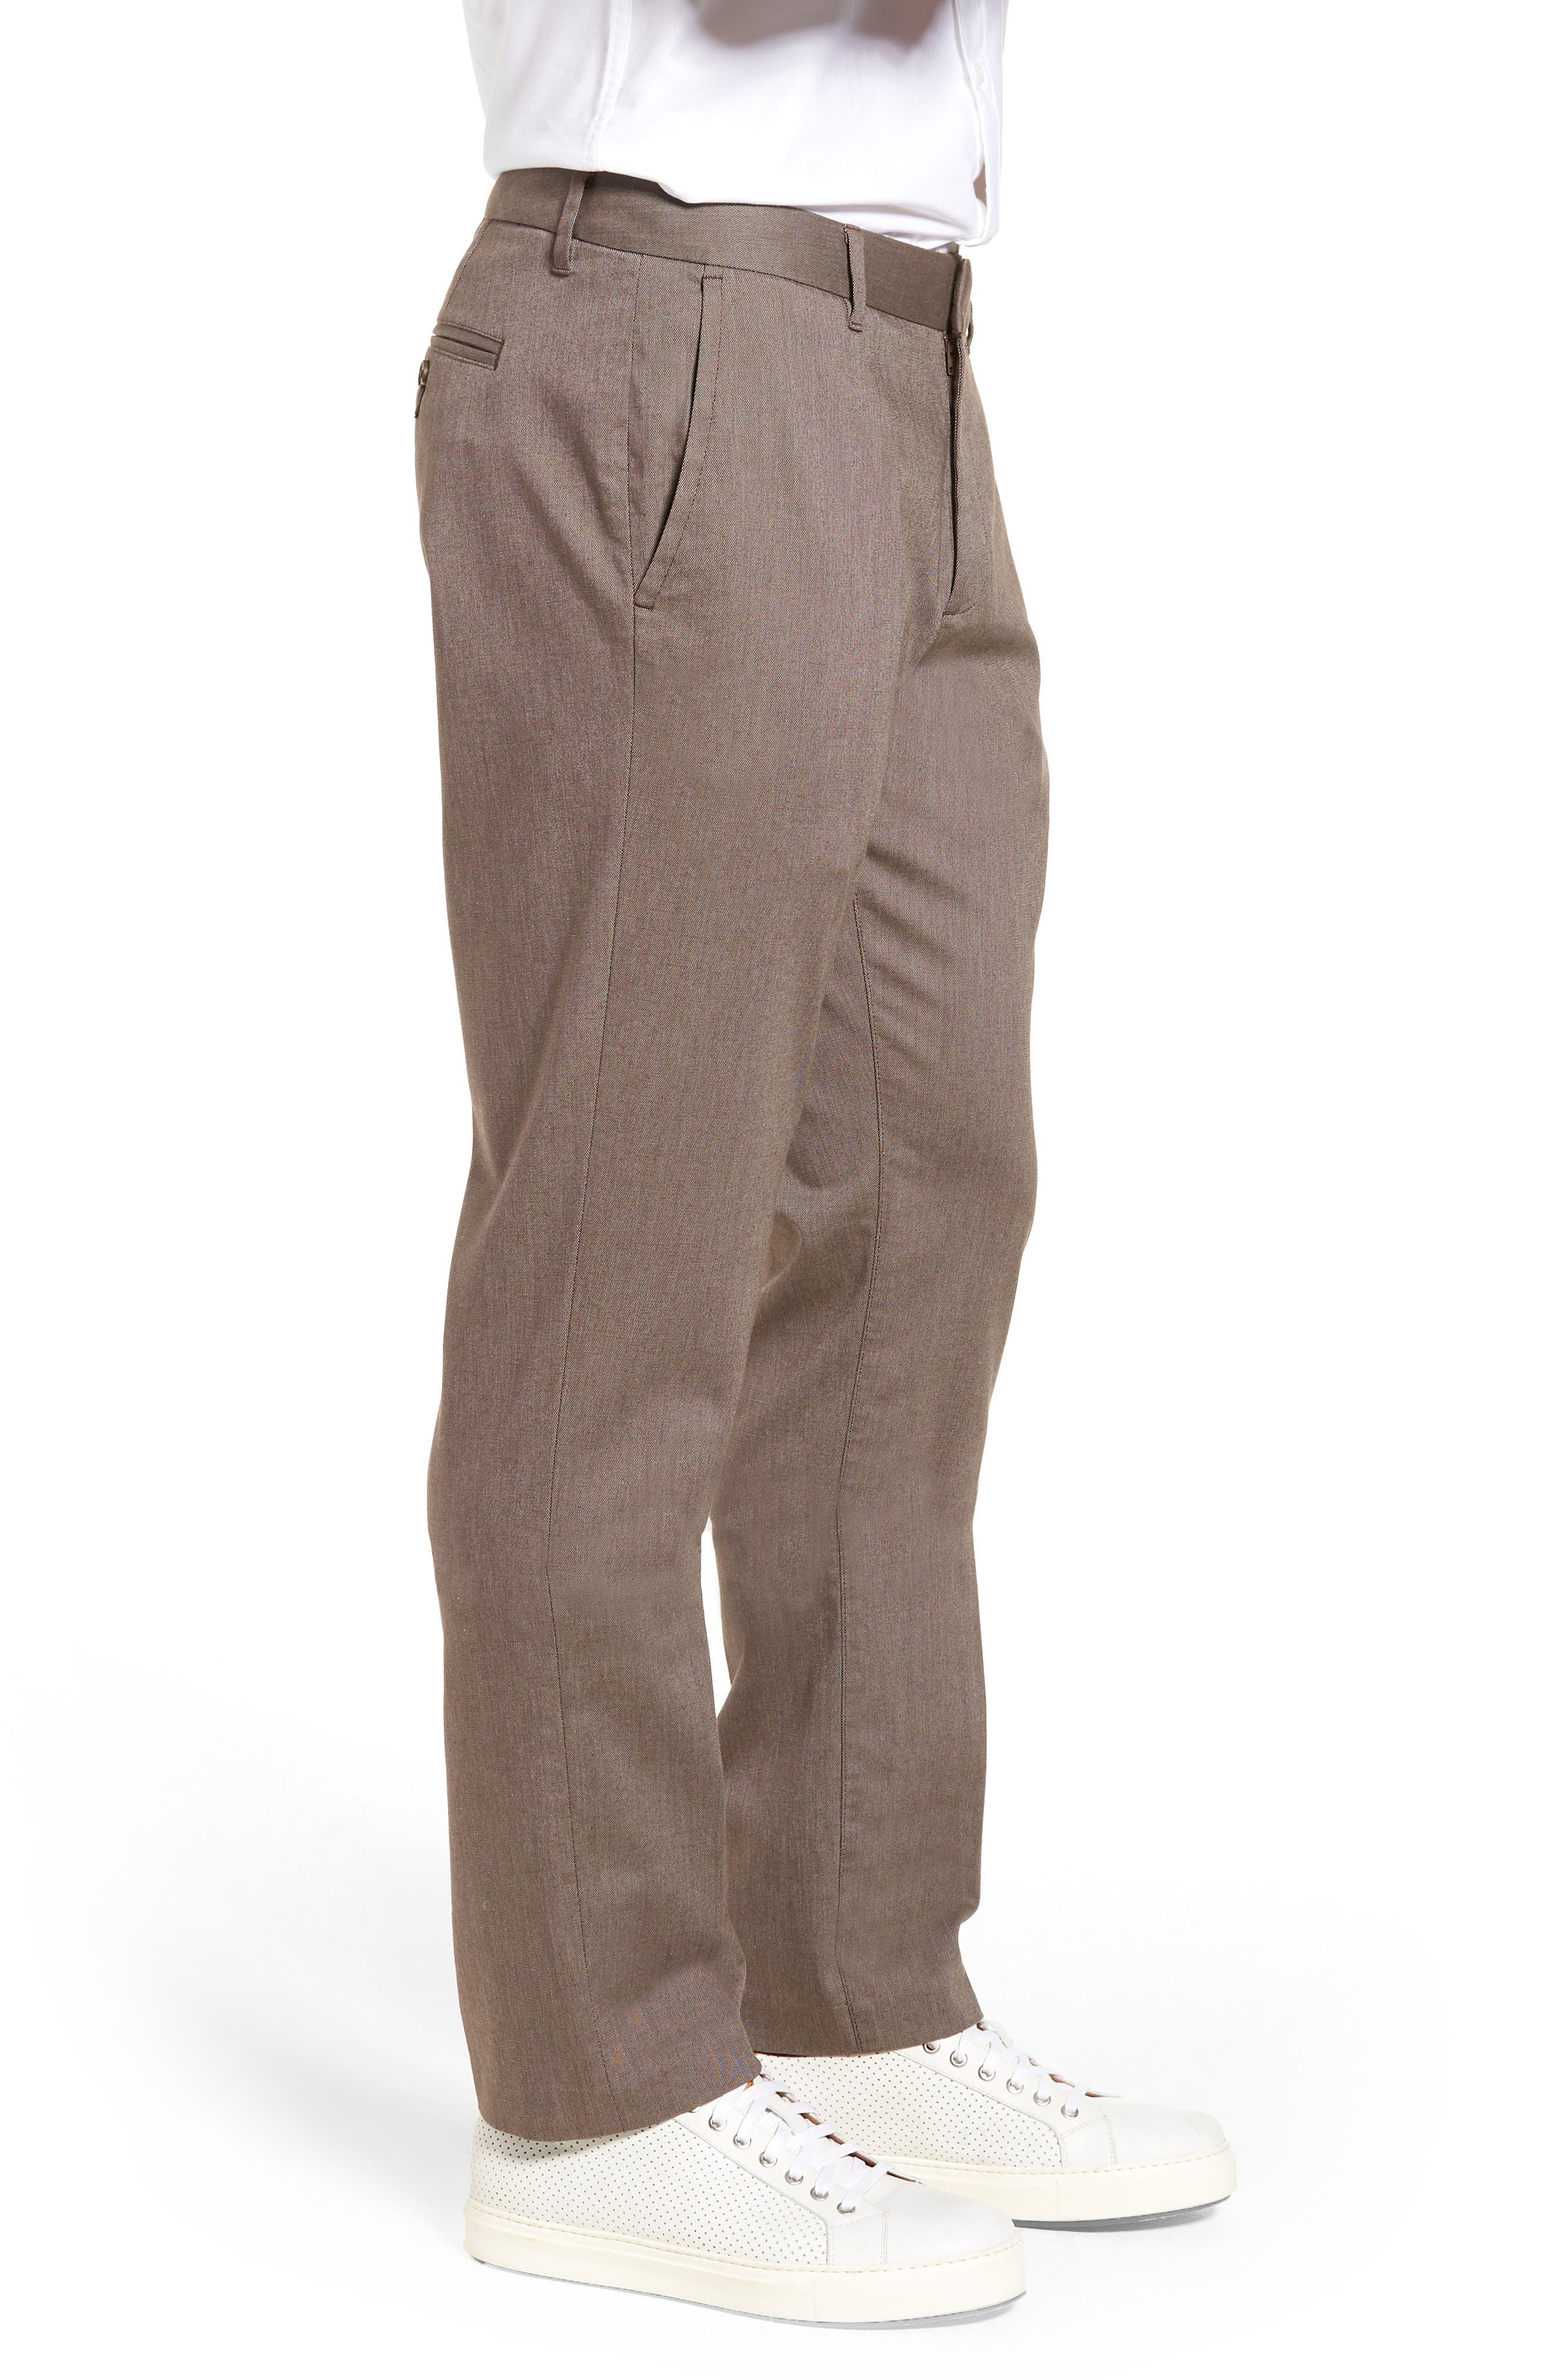 Weekday Warrior Flat Front Stretch Cotton Pants,                             Alternate thumbnail 3, color,                             200